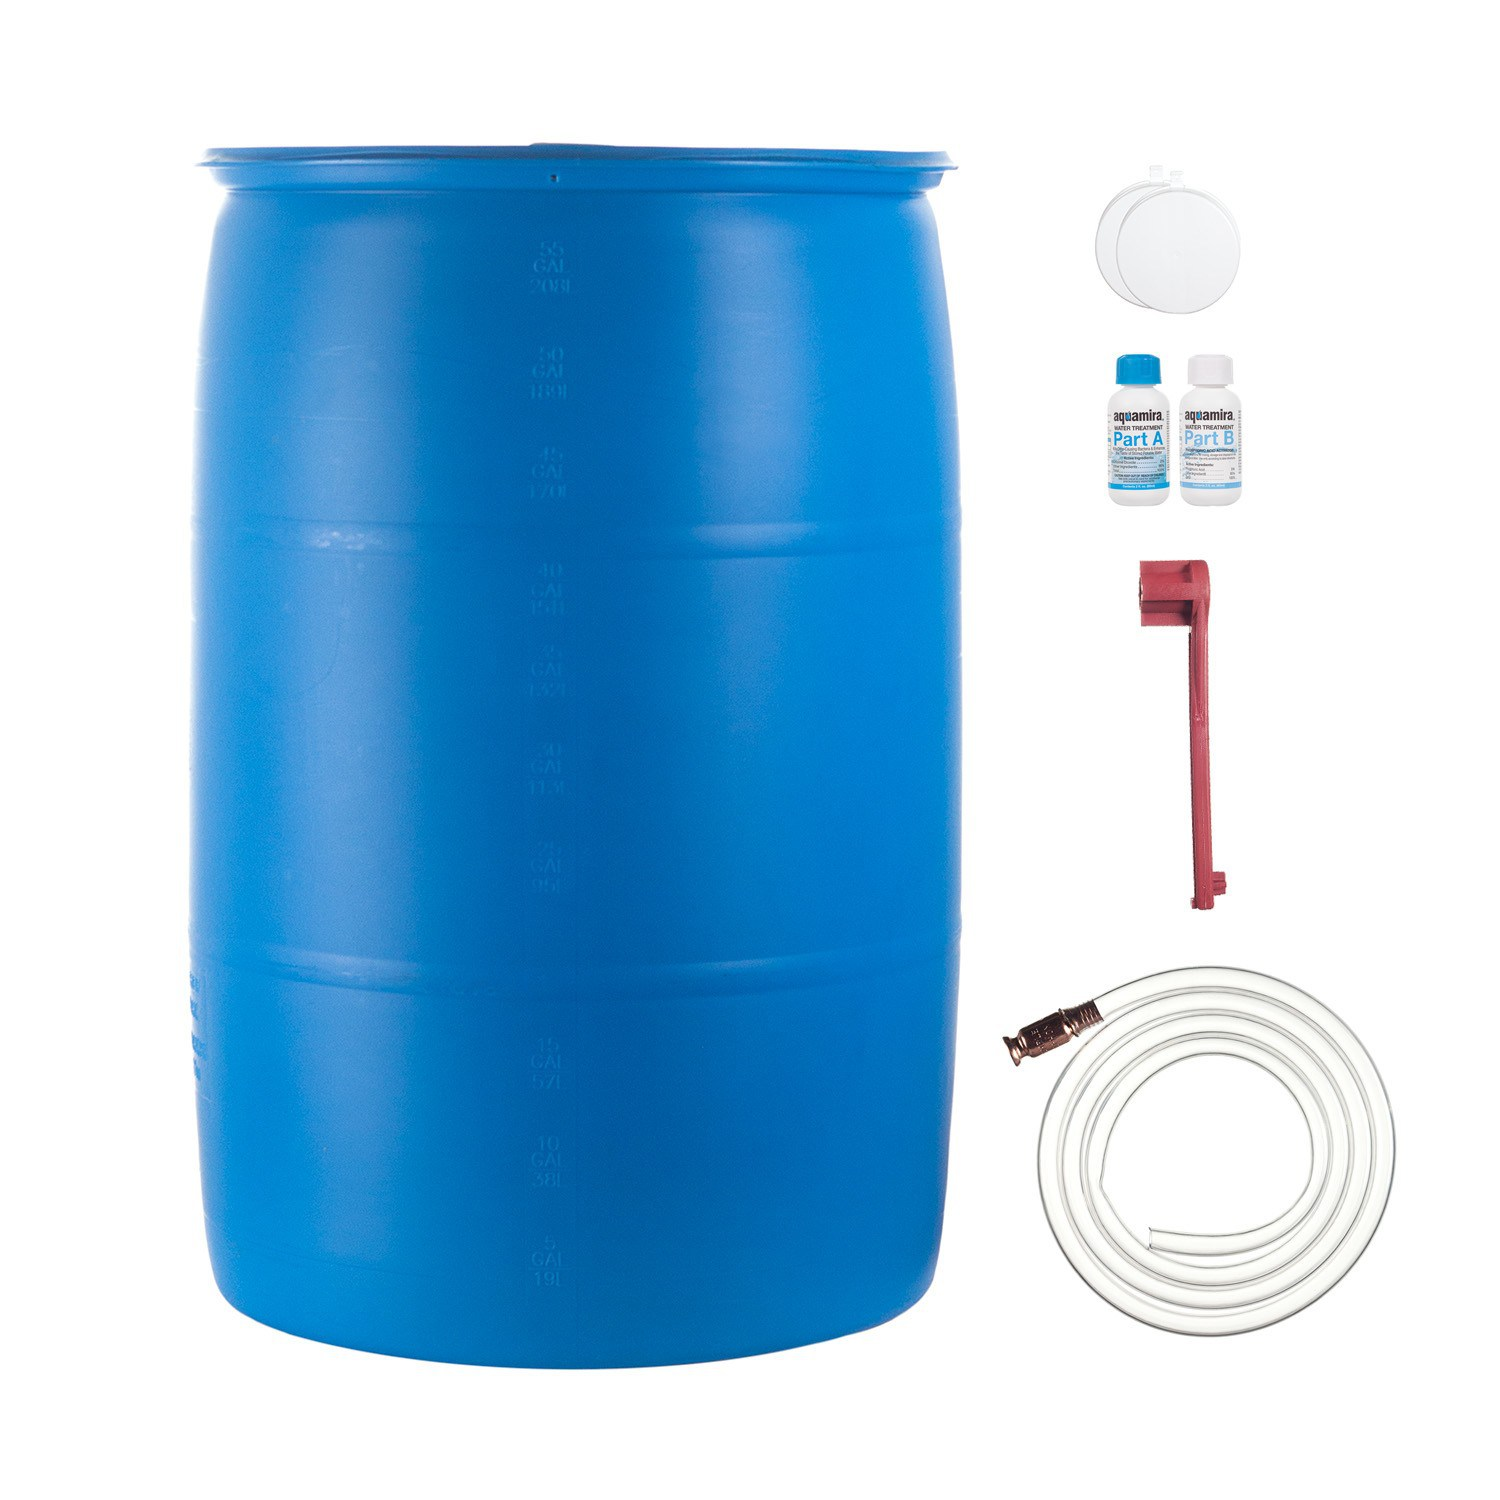 Water Storage Containers for Prepping Dedicated Prepper